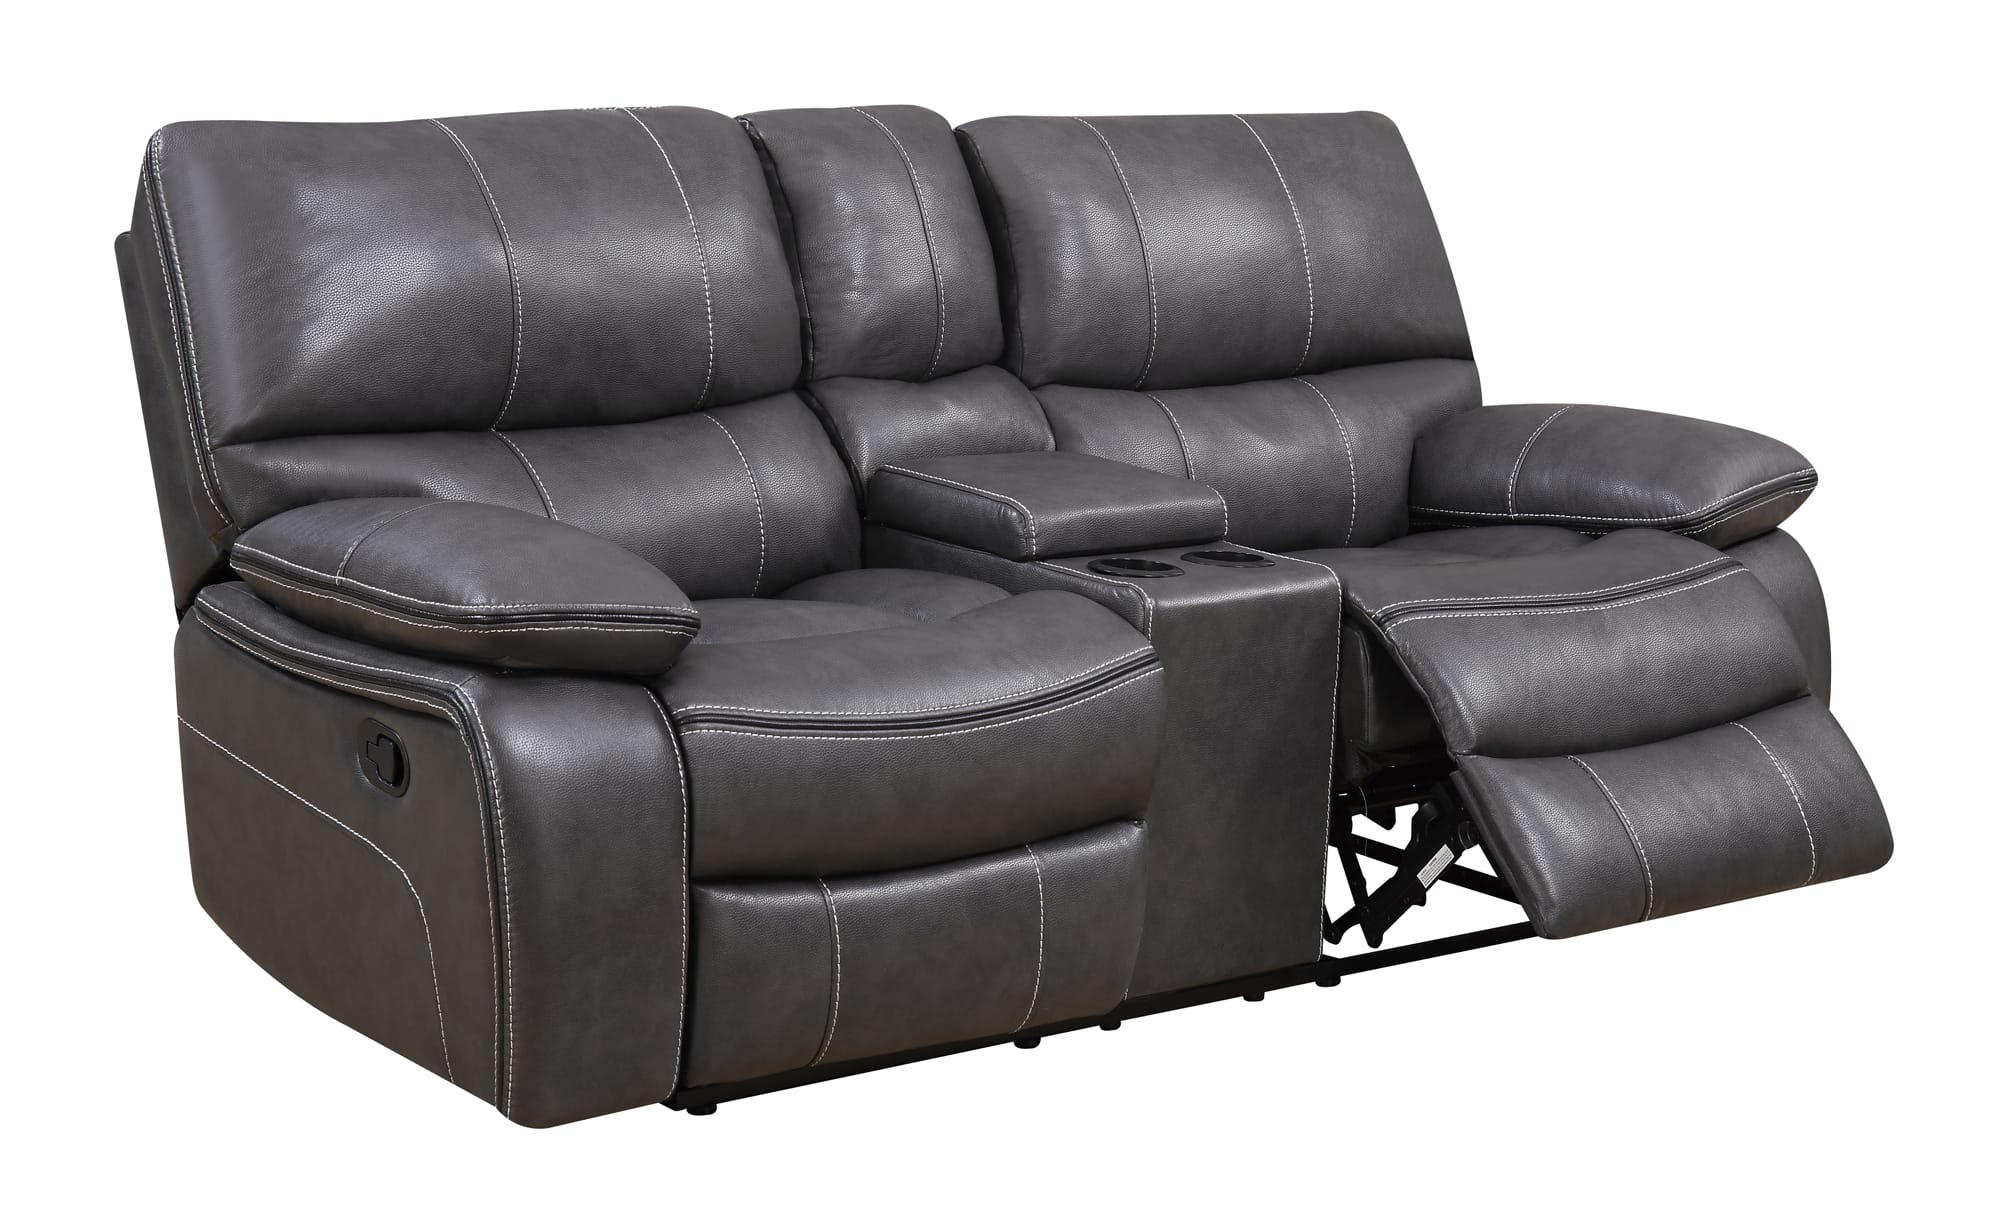 Leather Loveseat U0040 Grey Black Leather Console Reclining Loveseat By